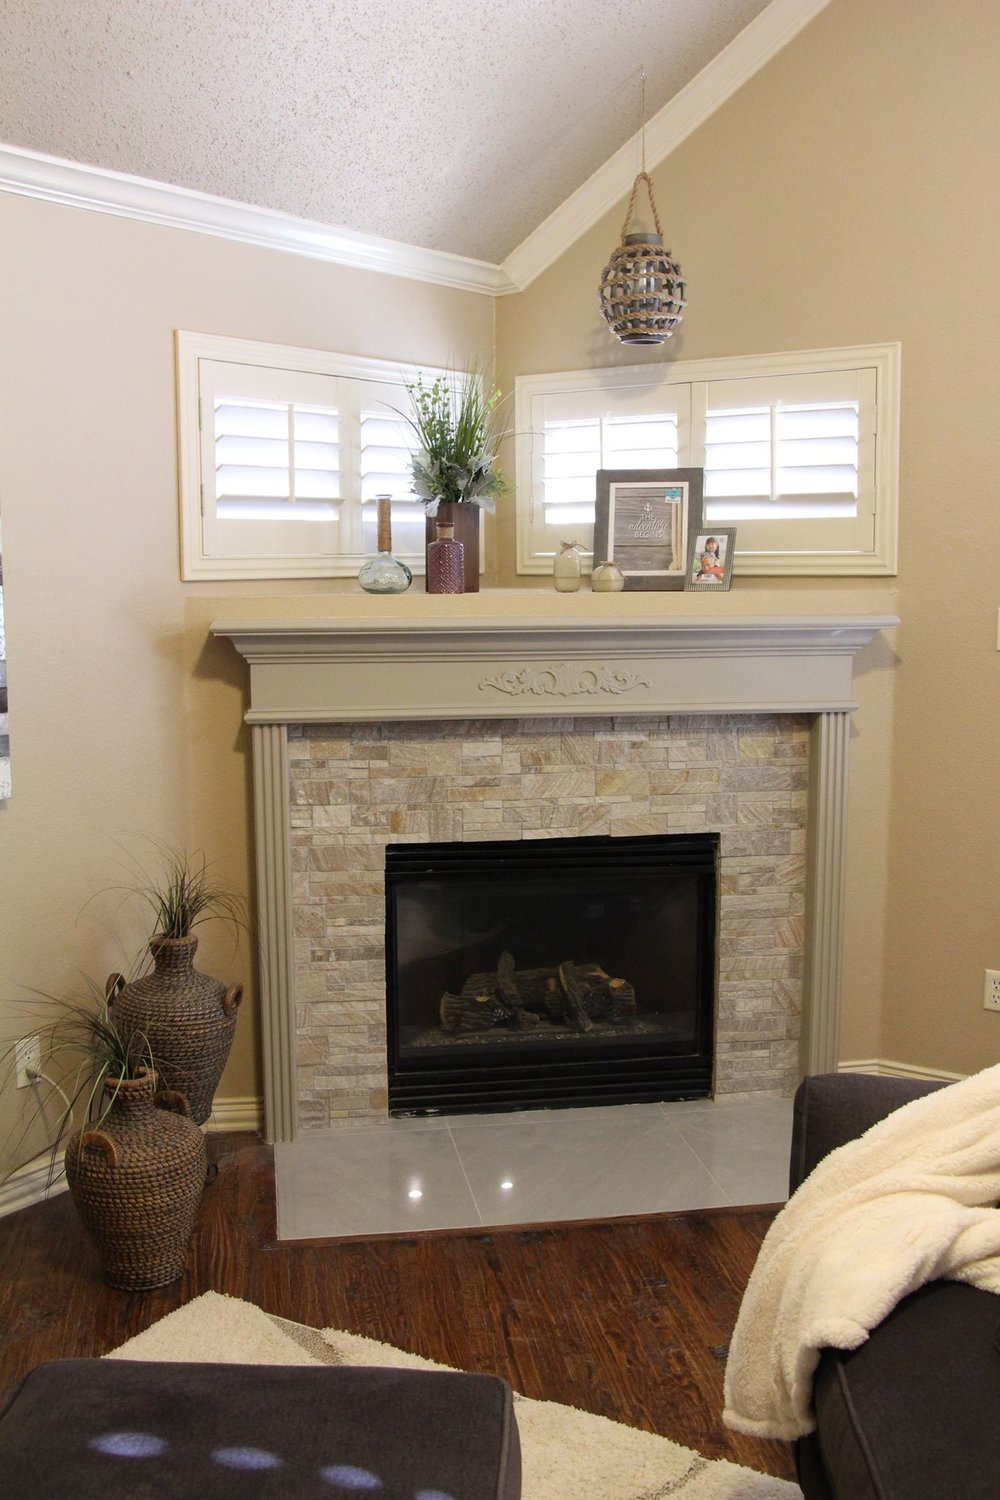 Full service Client: fireplace refresh, accessories, & styling